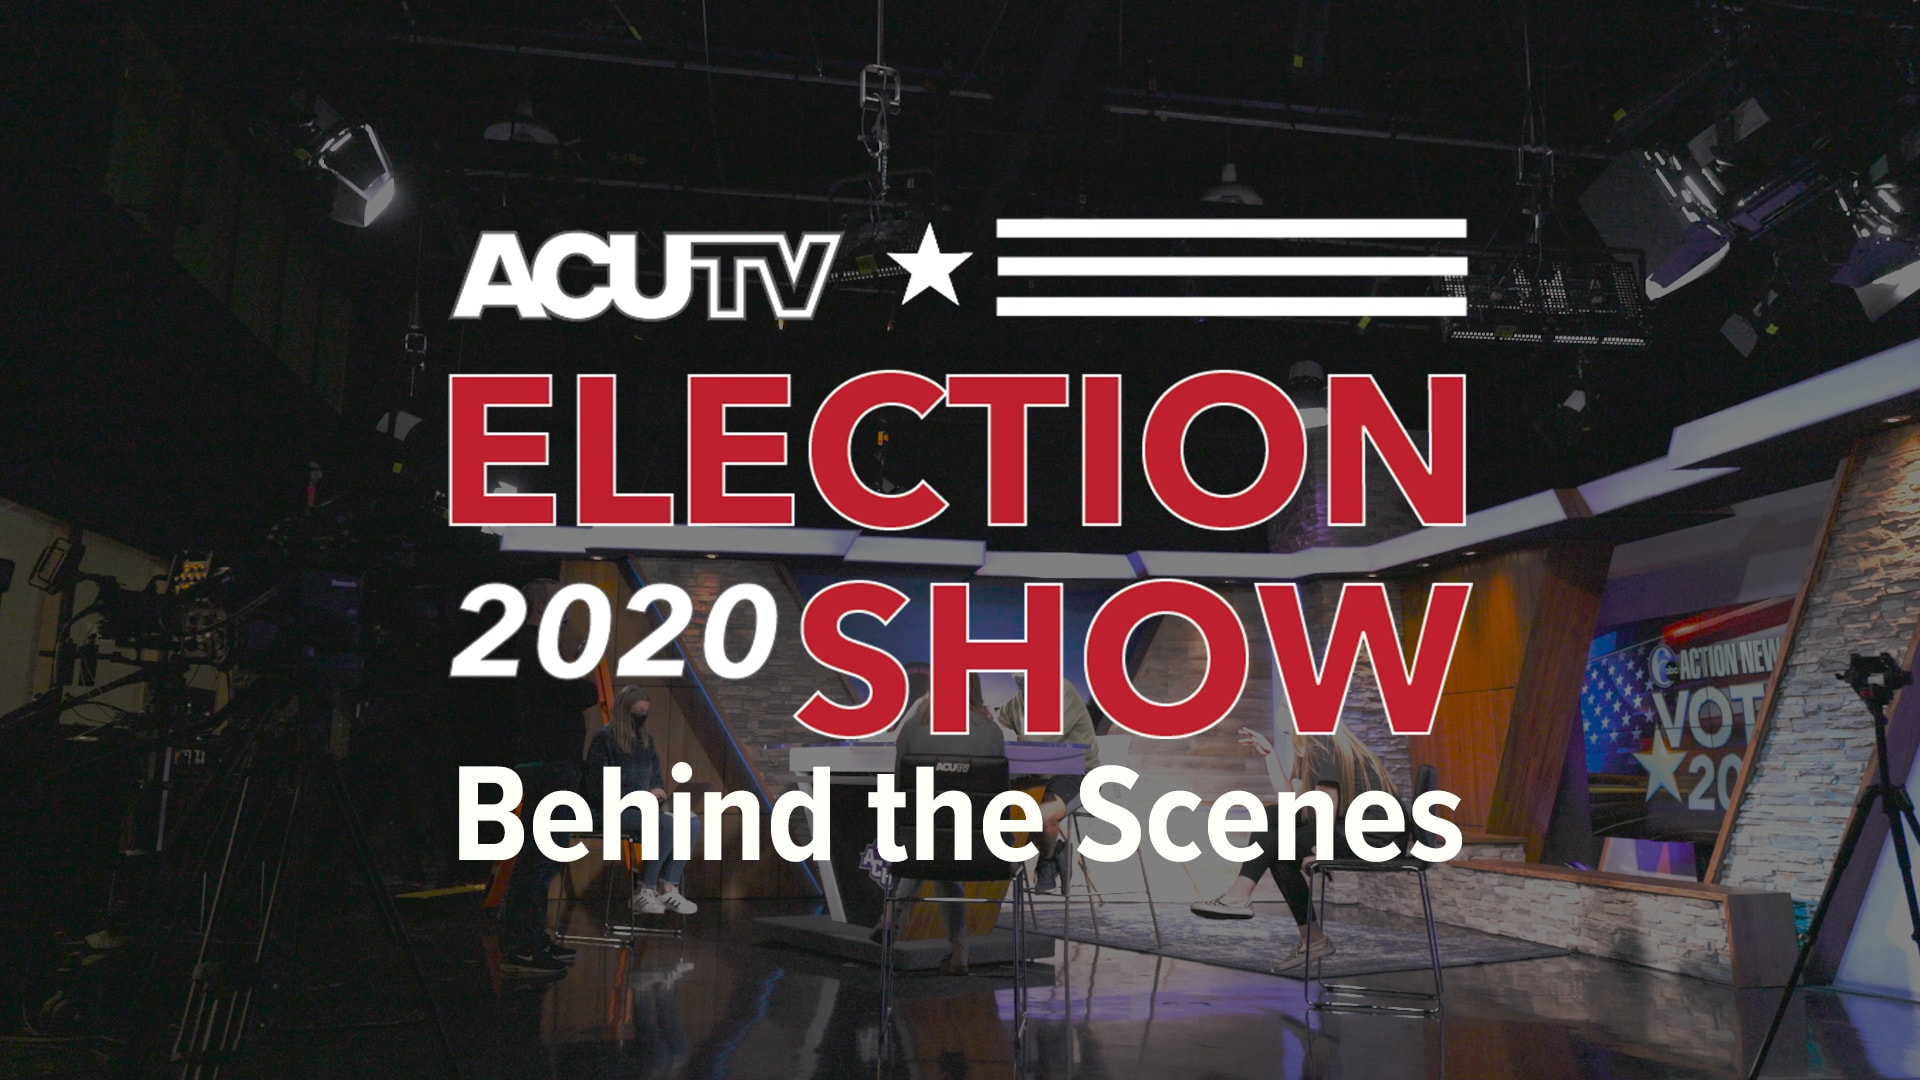 Video – ACUTV Election Night Show 2020 Behind the Scenes Feature